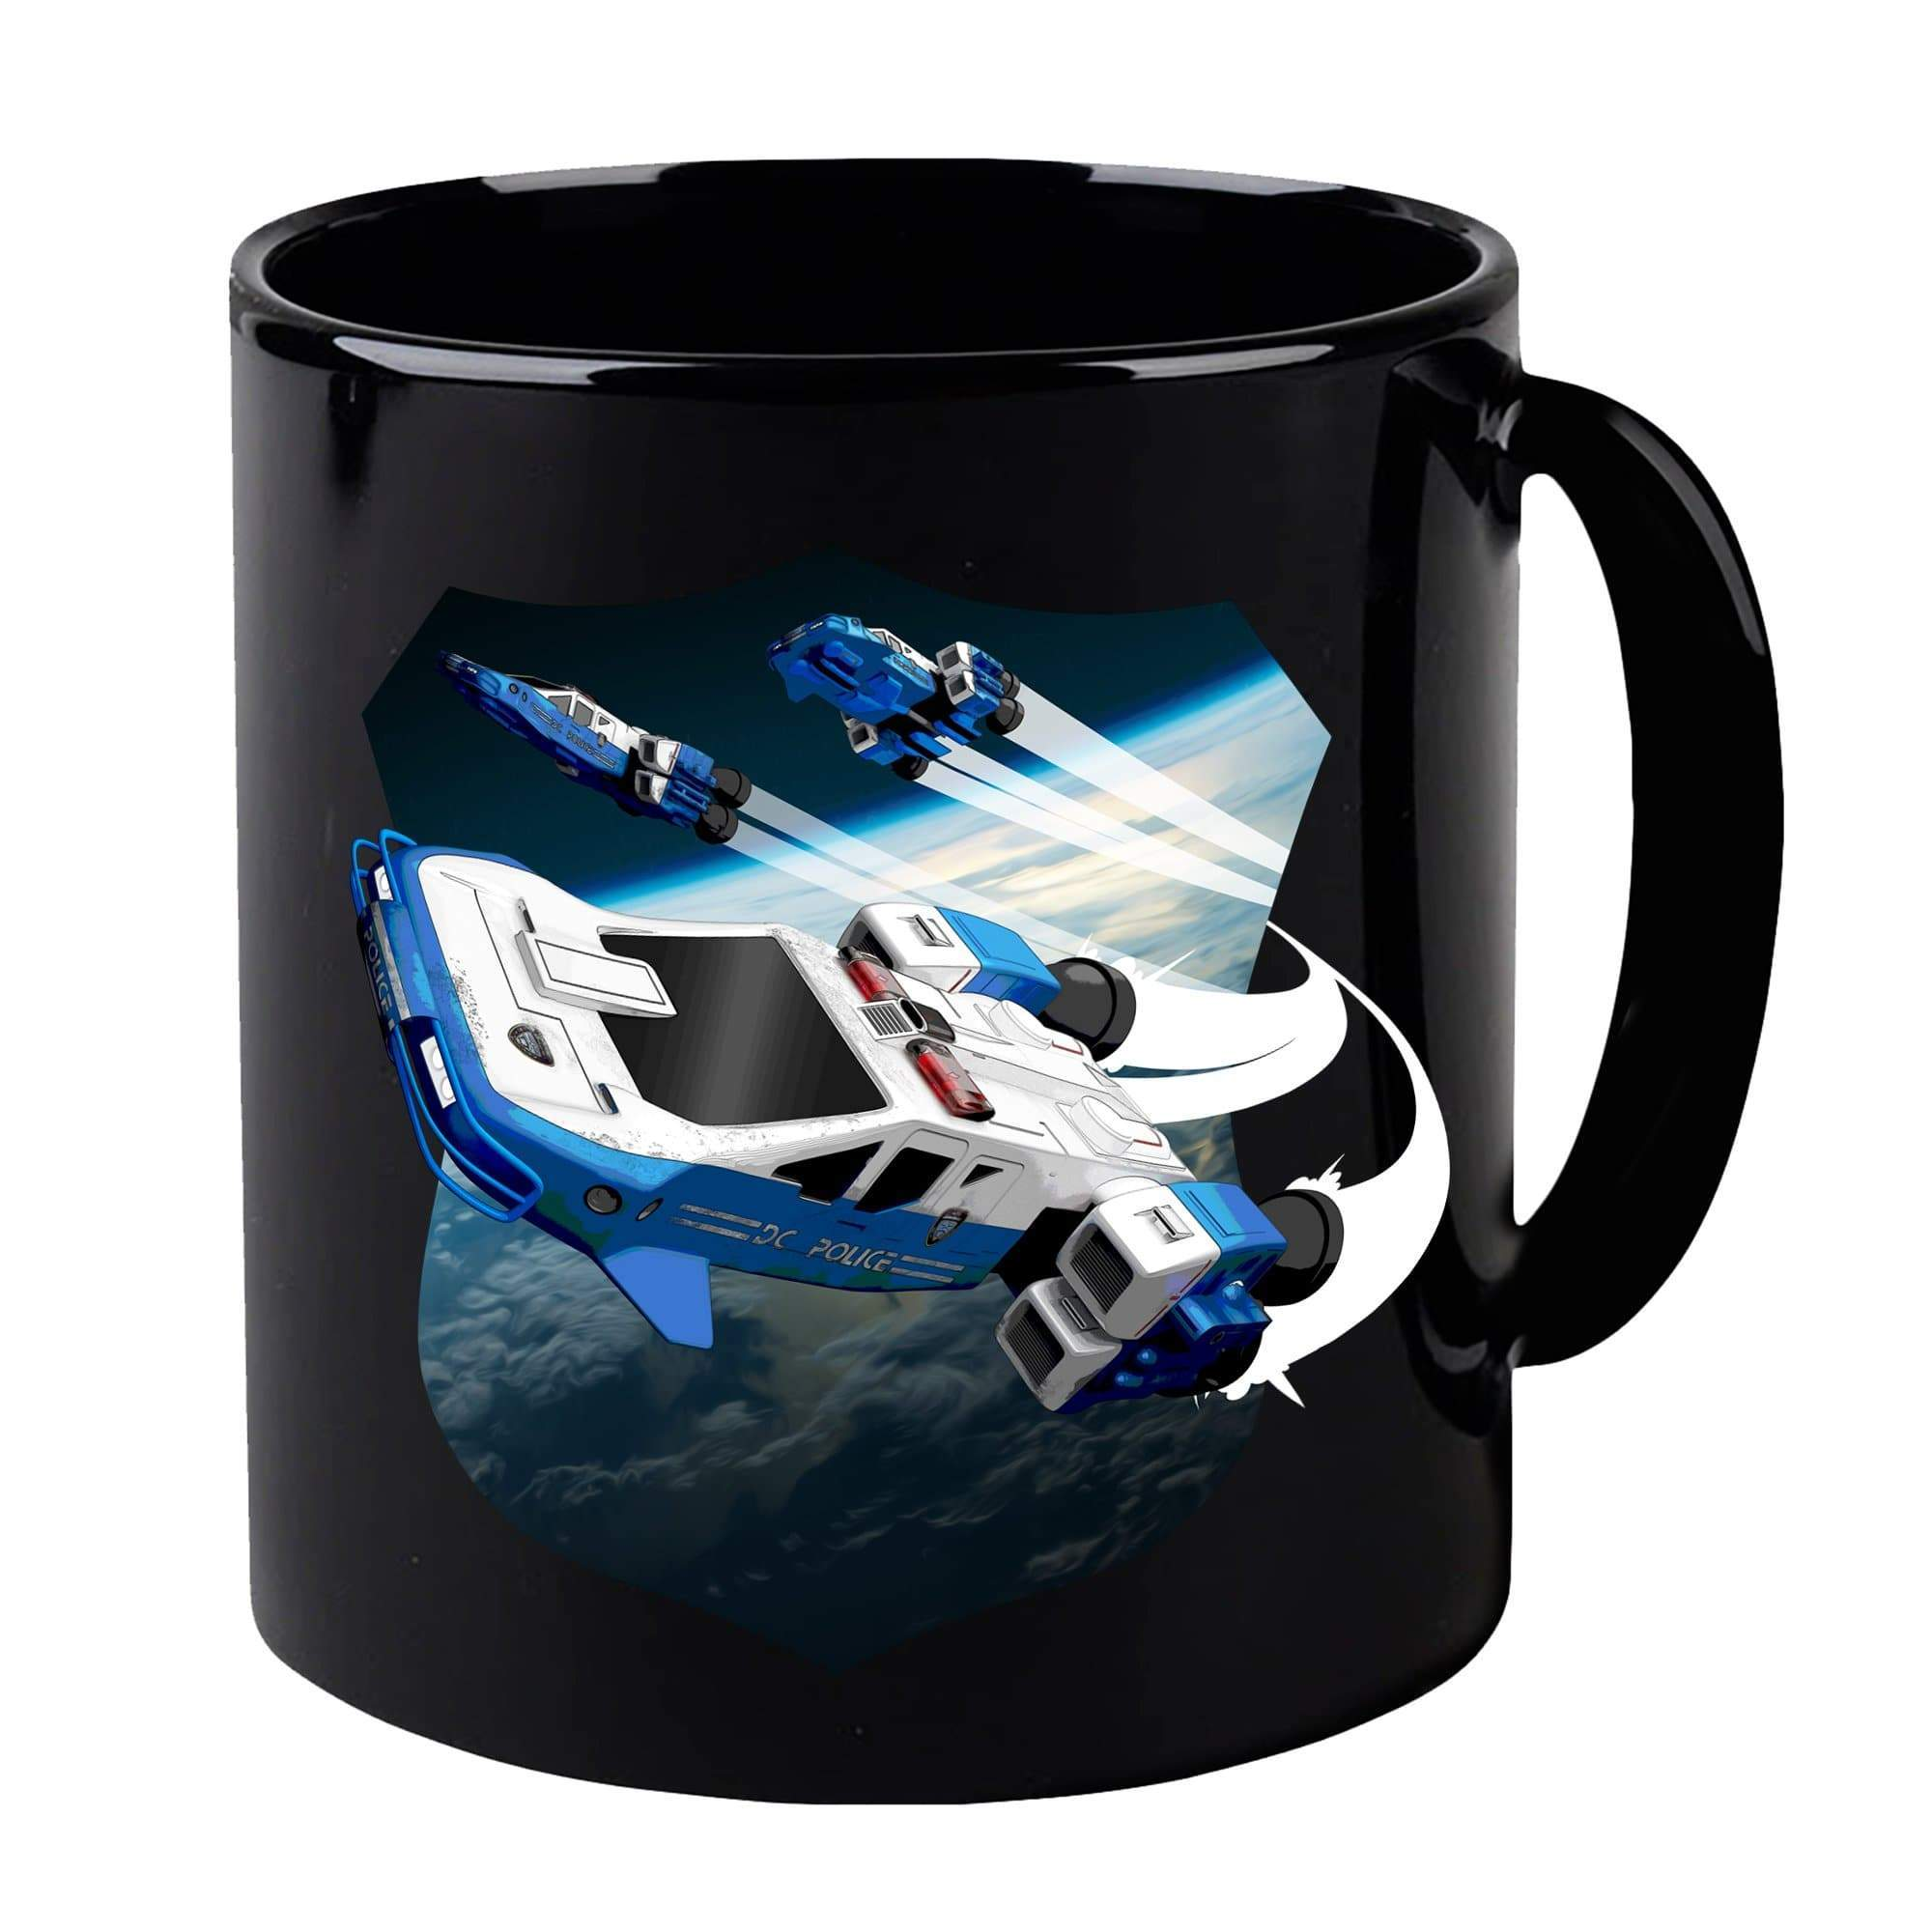 Space Precinct Cruiser Mug [Official & Exclusive] - The Gerry Anderson Store